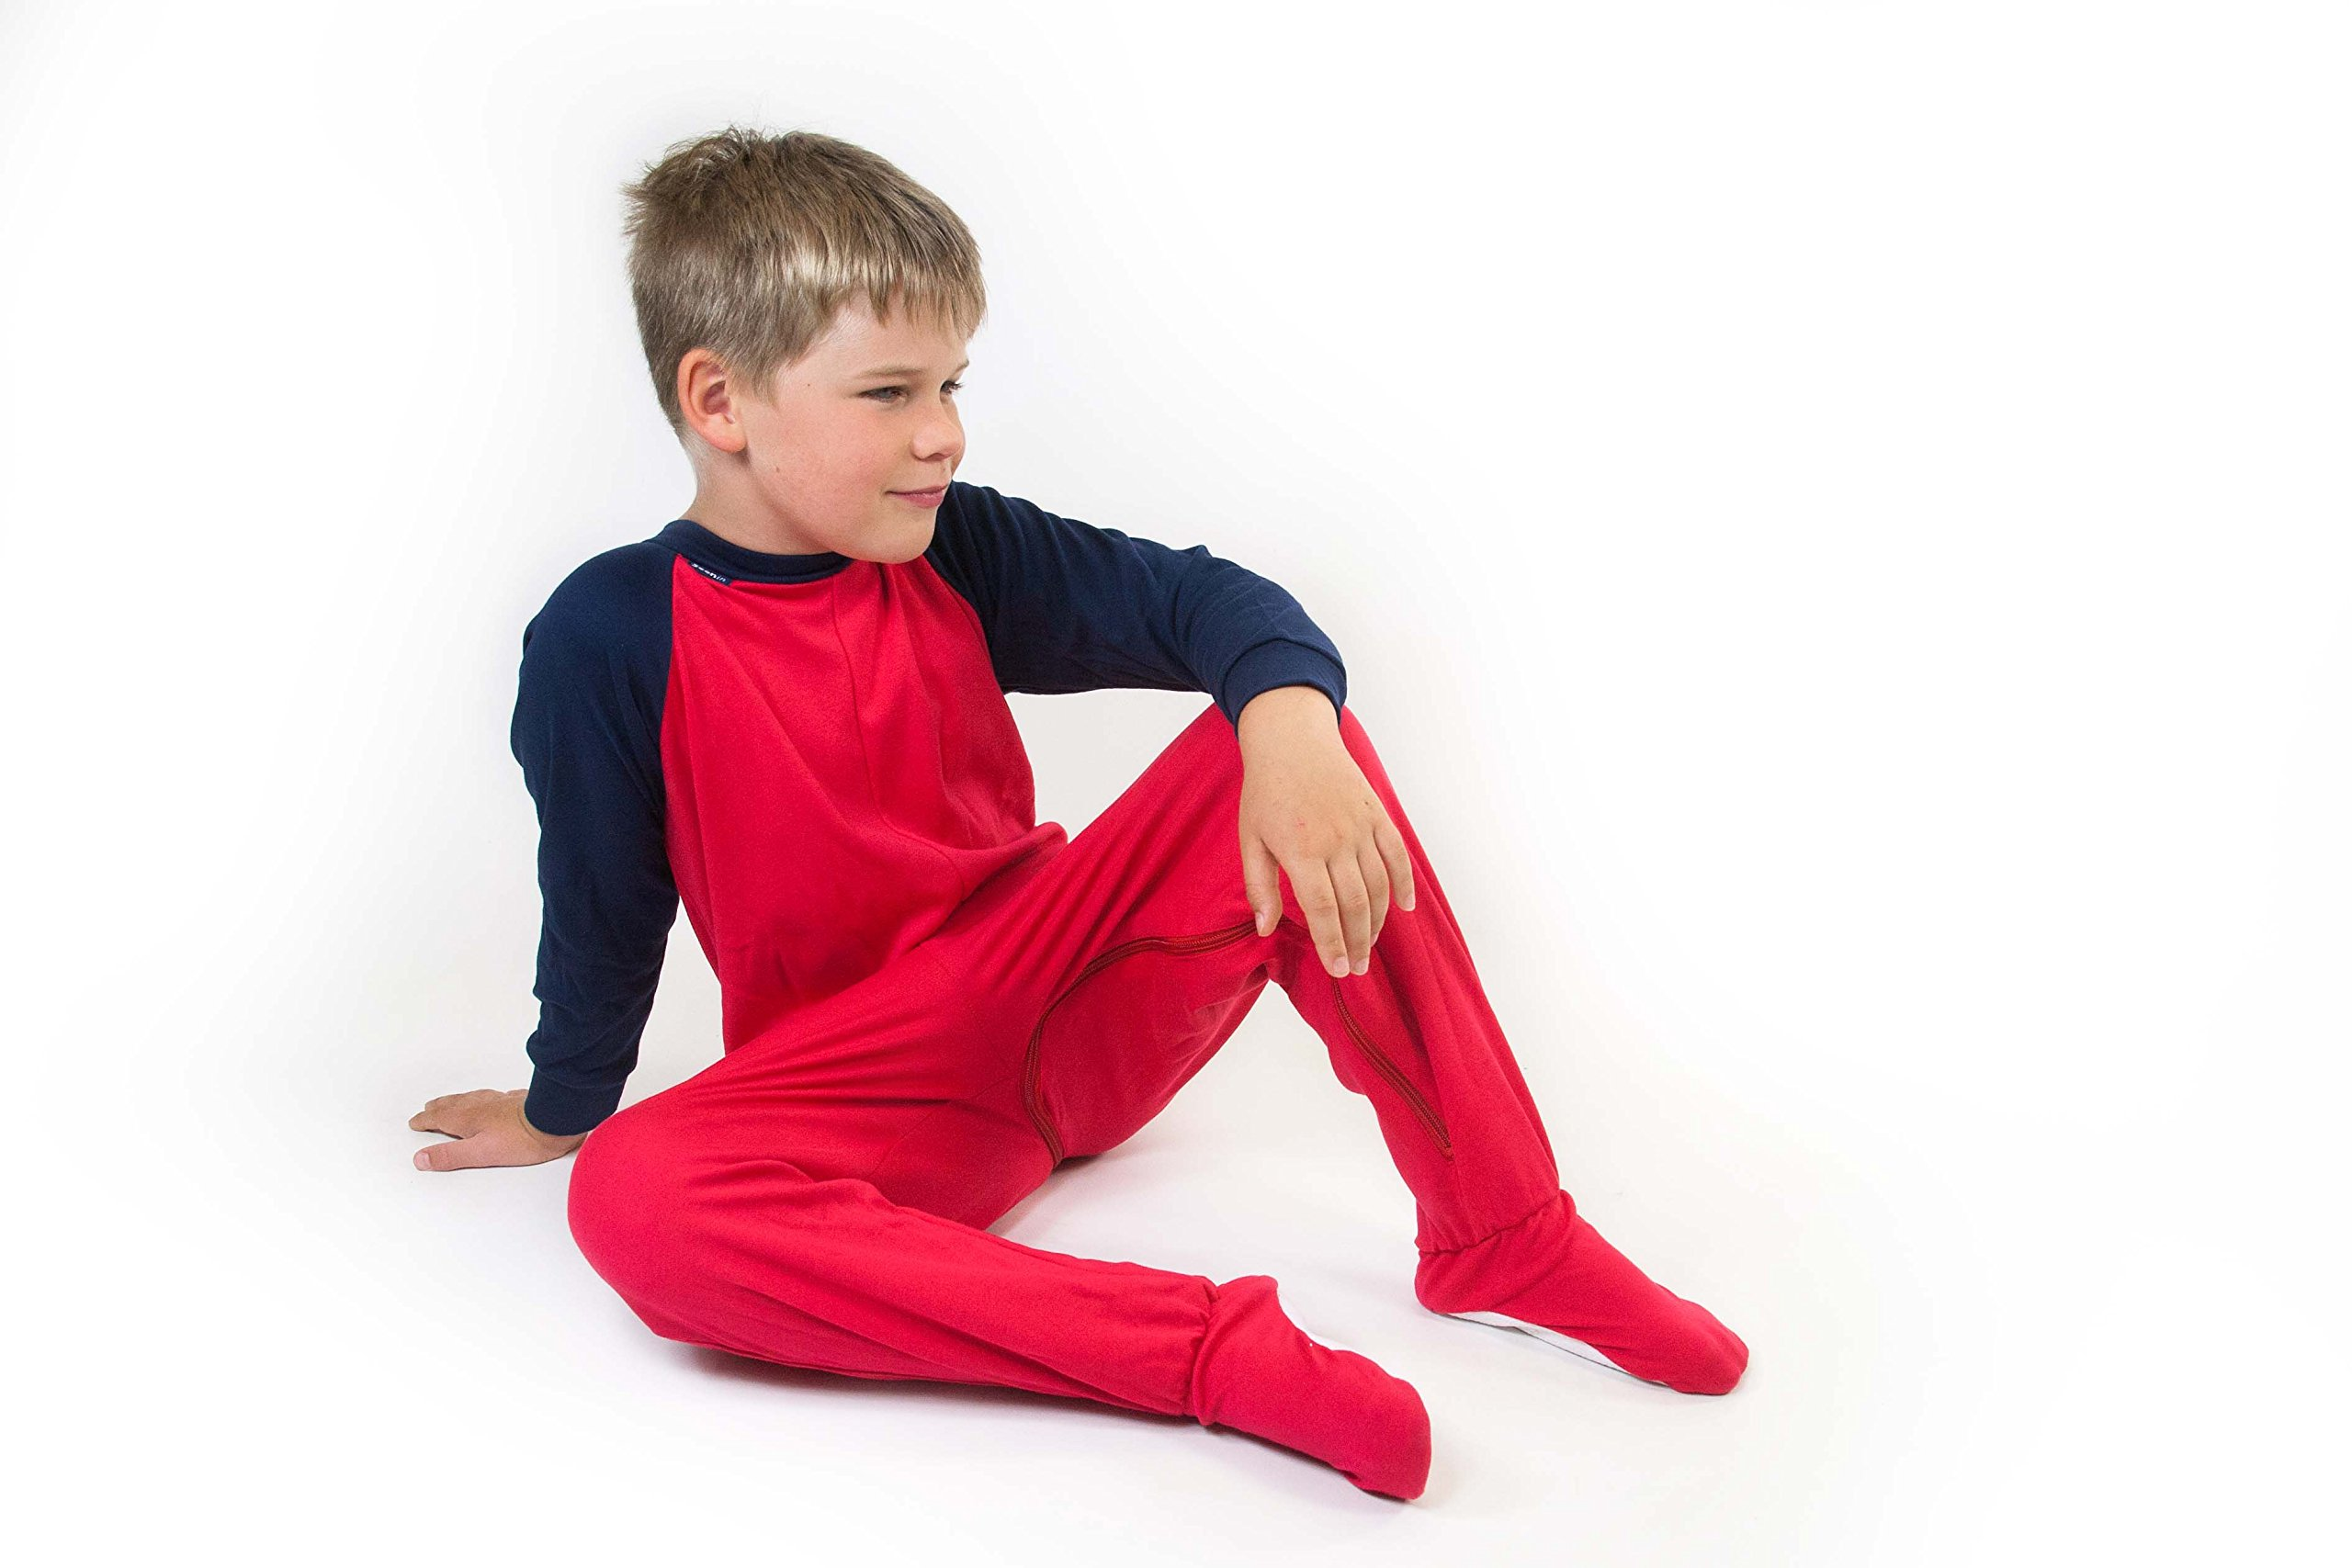 Special Needs Unisex Zip Back Footed Pajamas for Kids - RED/Navy (13-14 yrs)